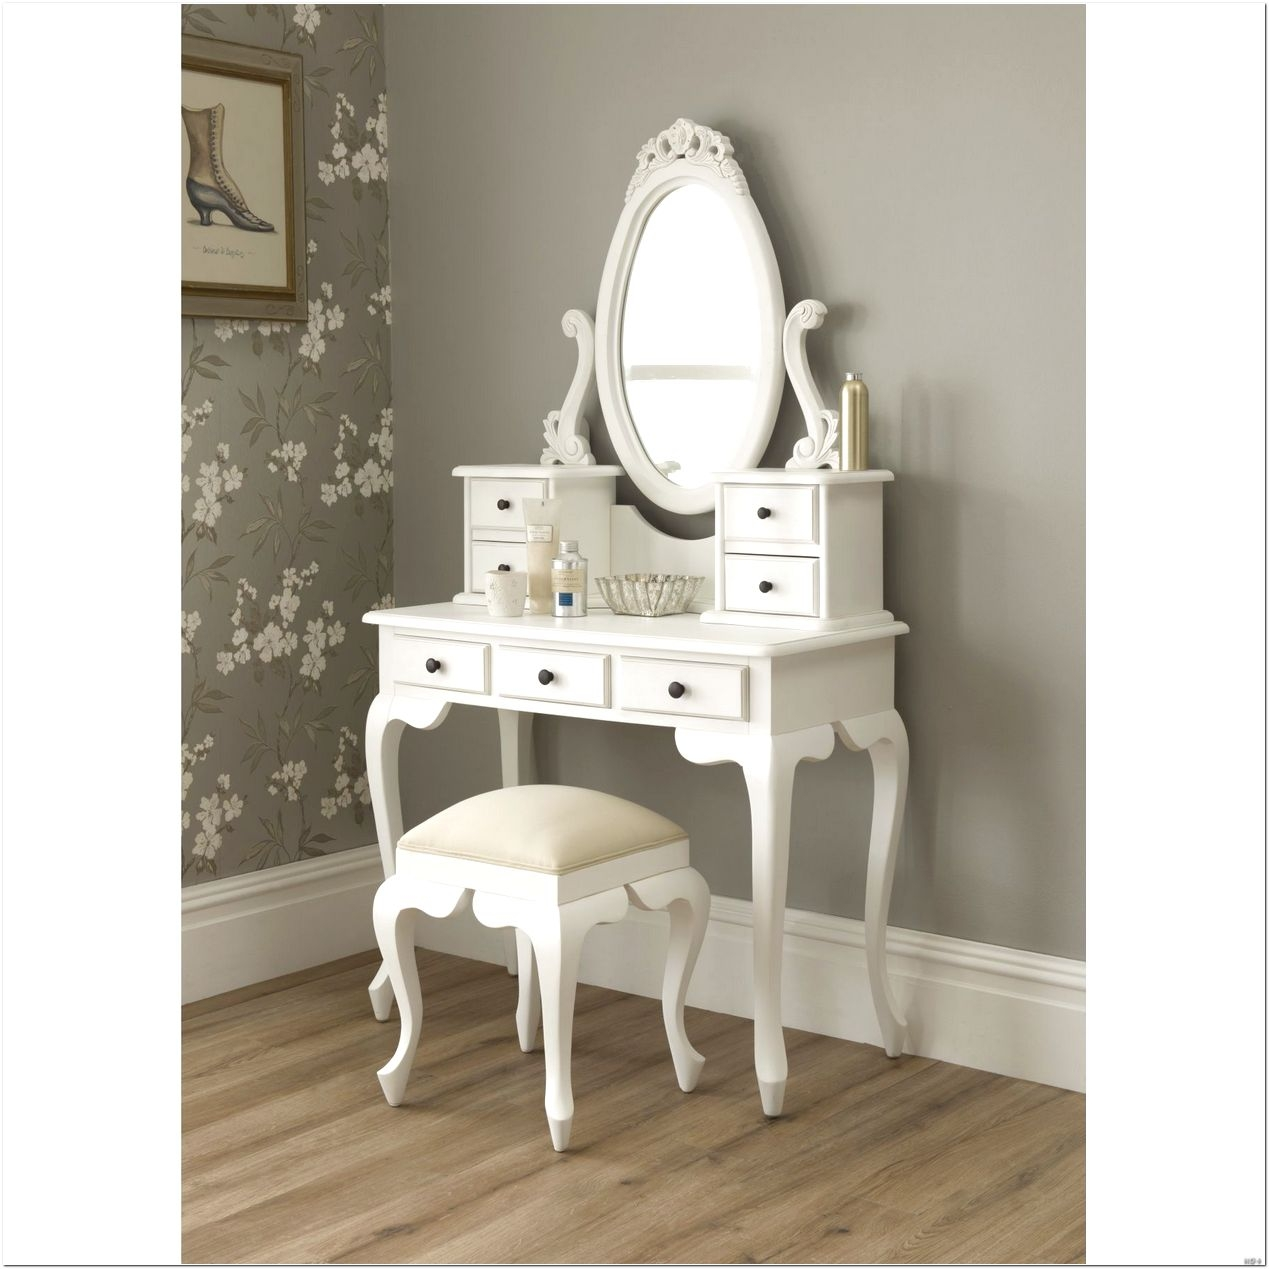 Bedroom Furniture Magnifying Mirrors Makeup Organization With Illuminated Dressing Table Mirrors (Image 4 of 15)